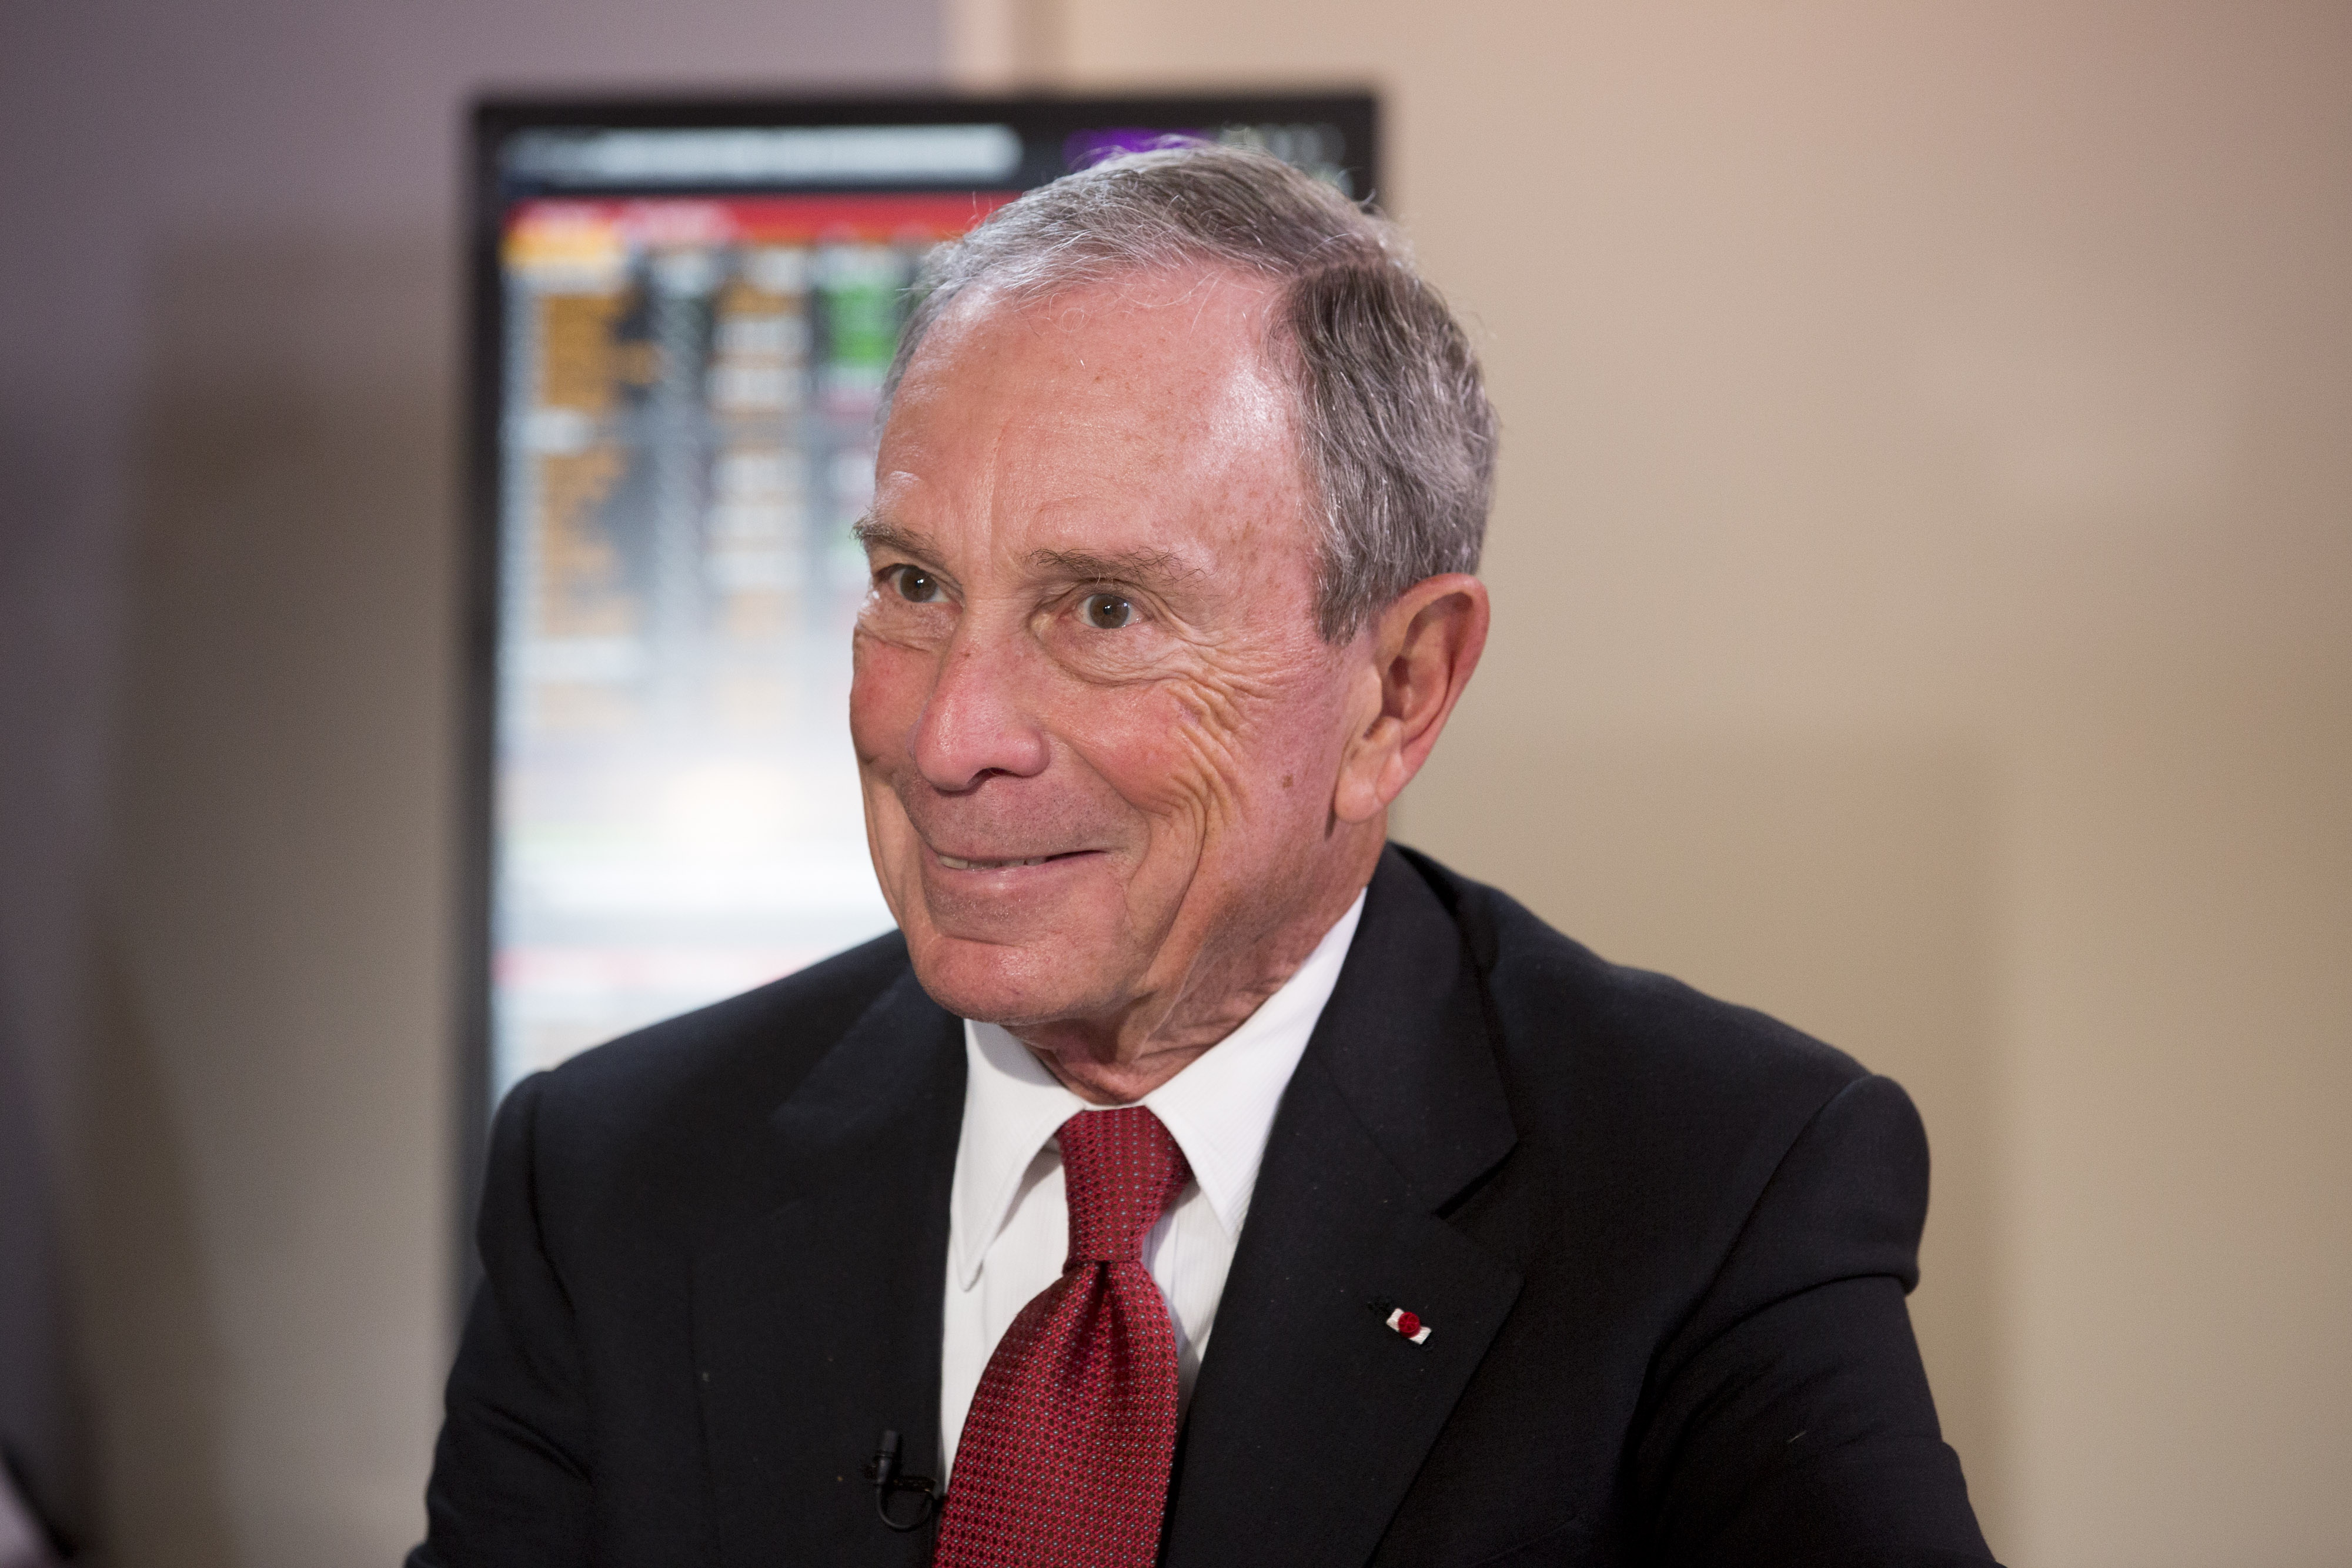 Michael Bloomberg, United Nations special envoy for cities and climate change and founder of Bloomberg LP, reacts during a news conference at the United Nations COP21 climate summit at Le Bourget in Paris, France, on Dec. 4, 2015.